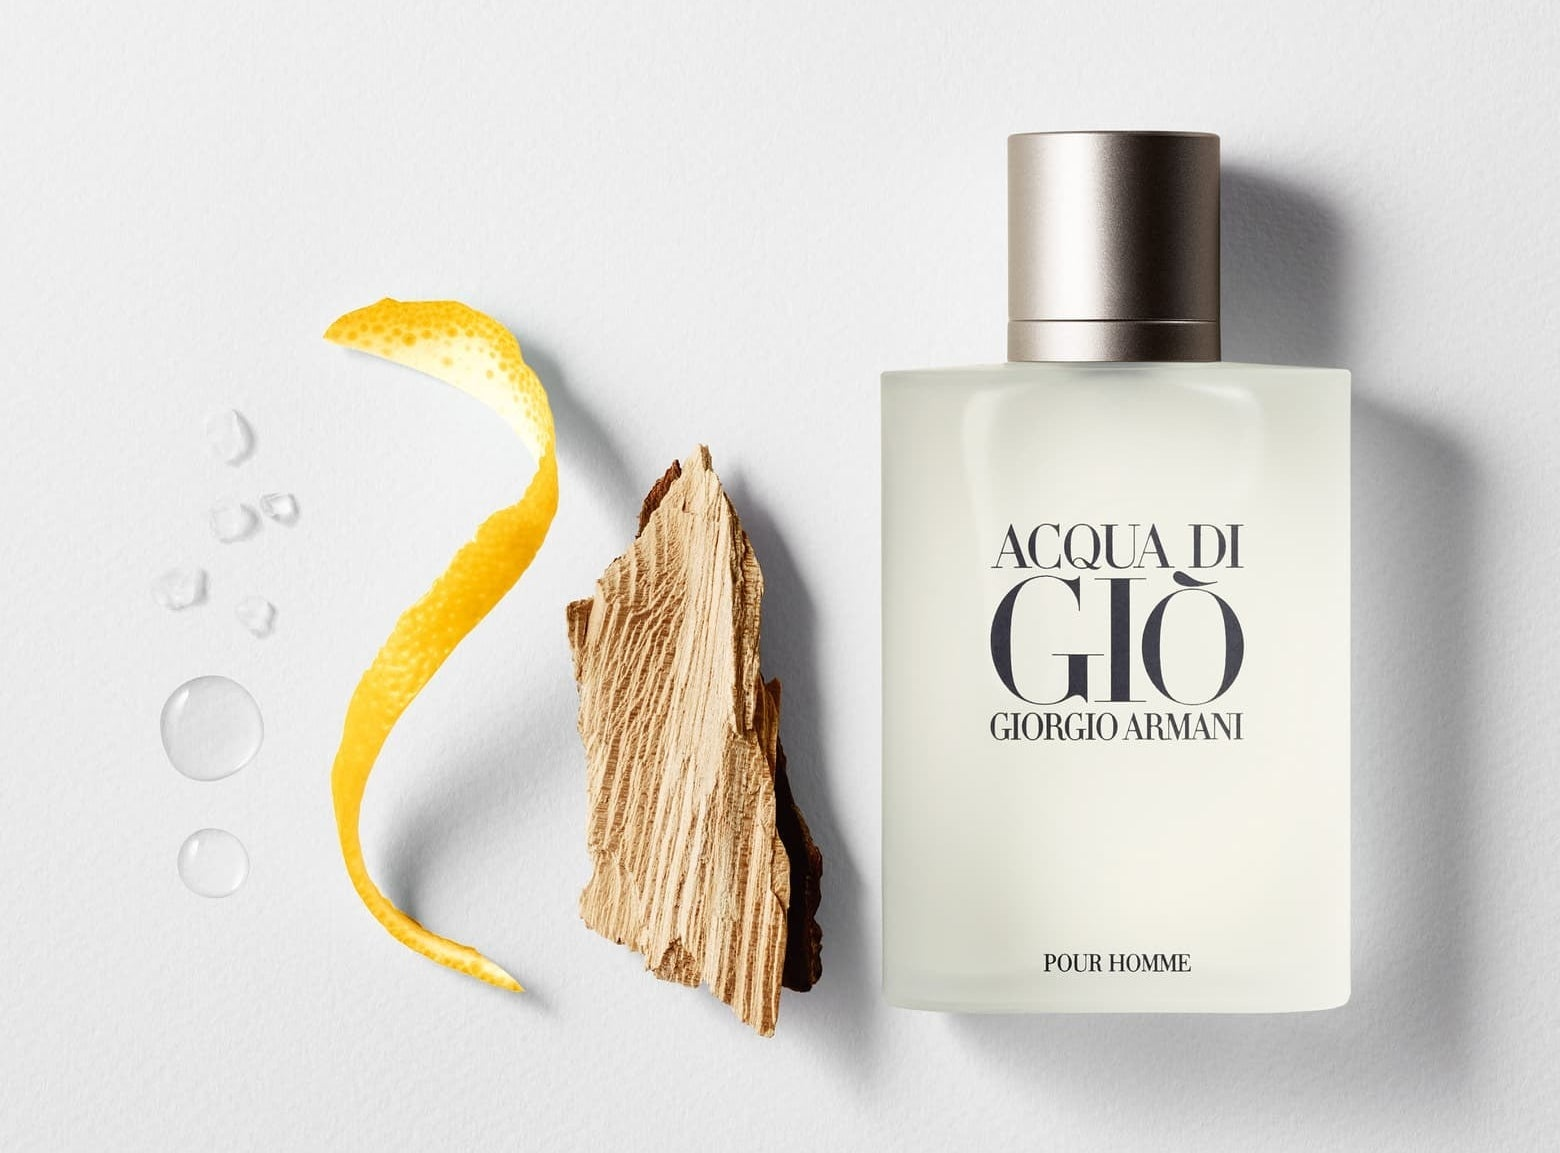 The bottle of cologne